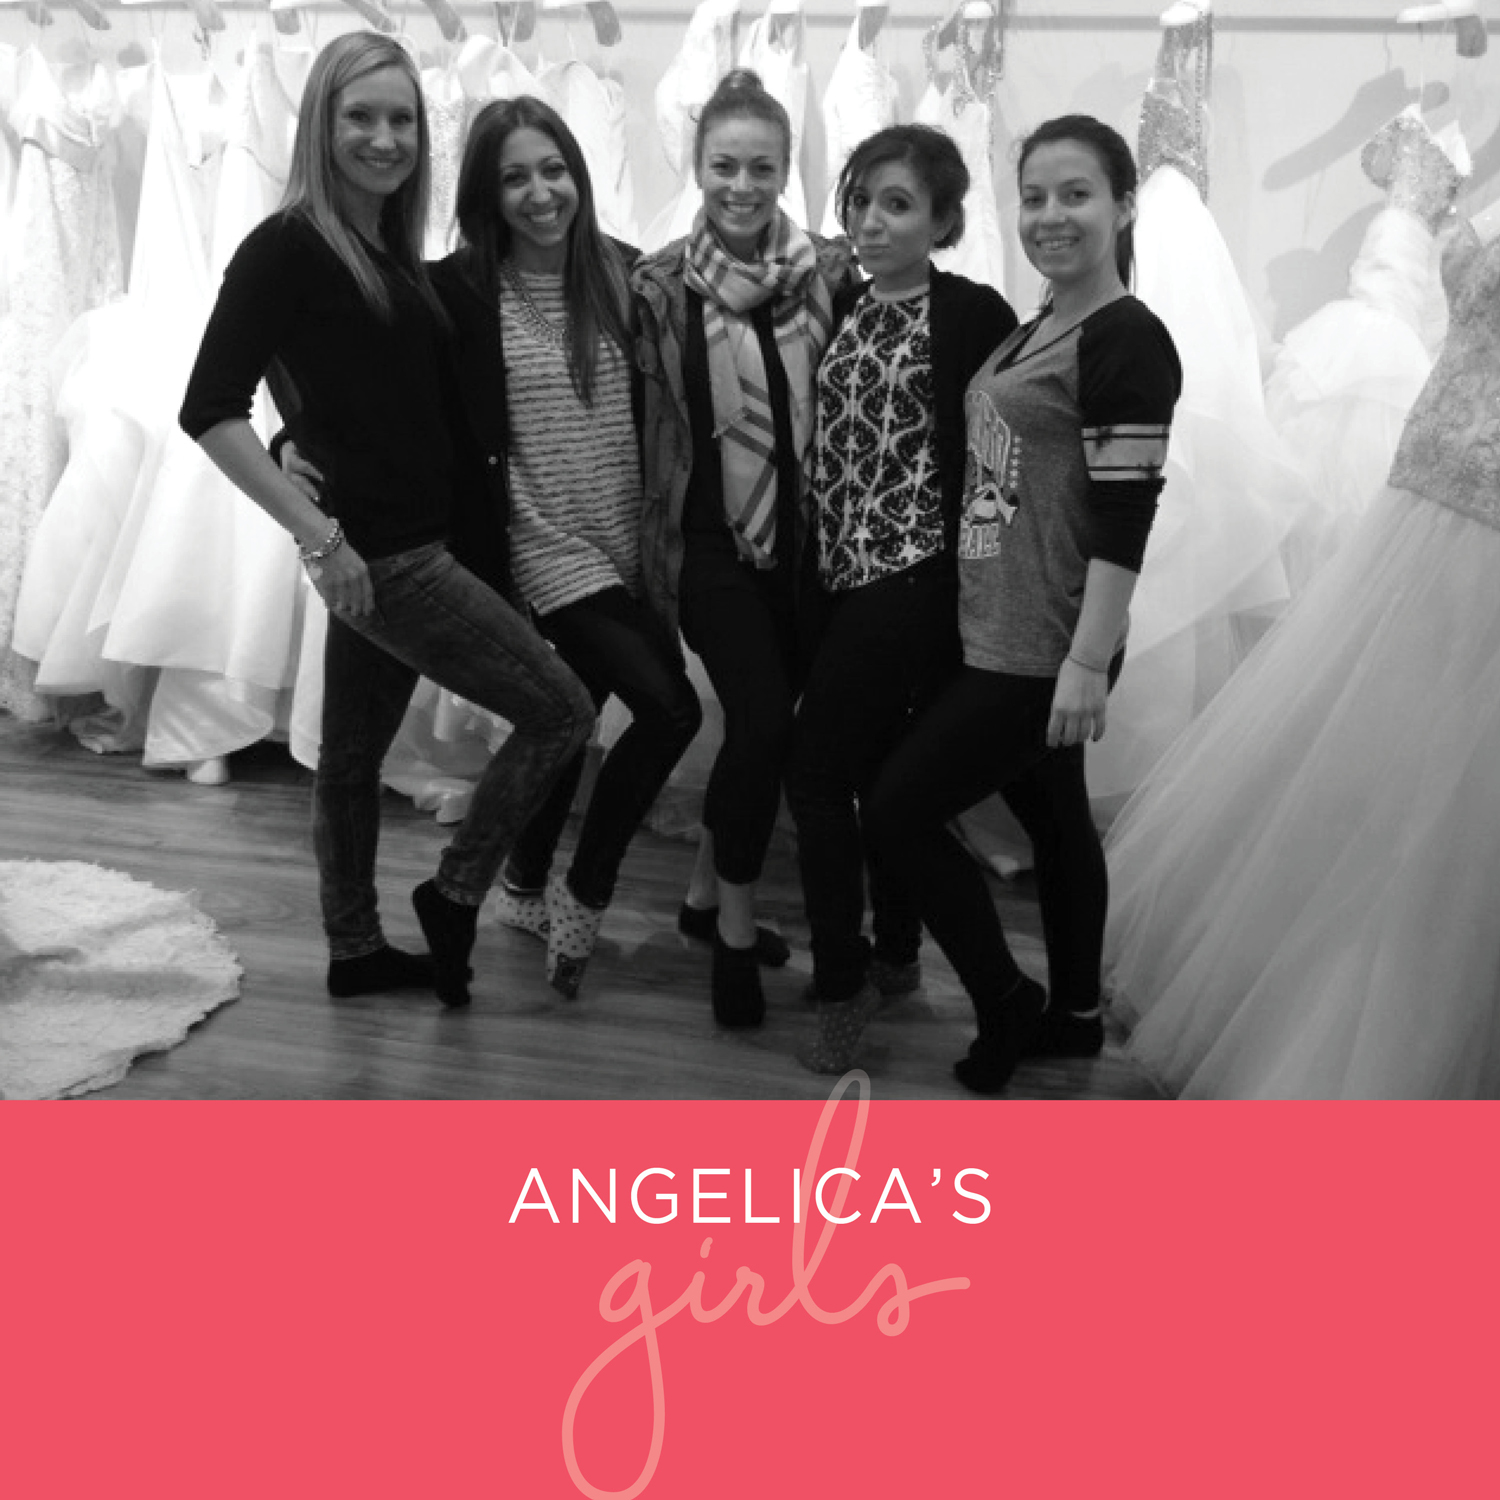 Pearl-Bridal-House-Love-Your-Girls-Angelica-.jpg